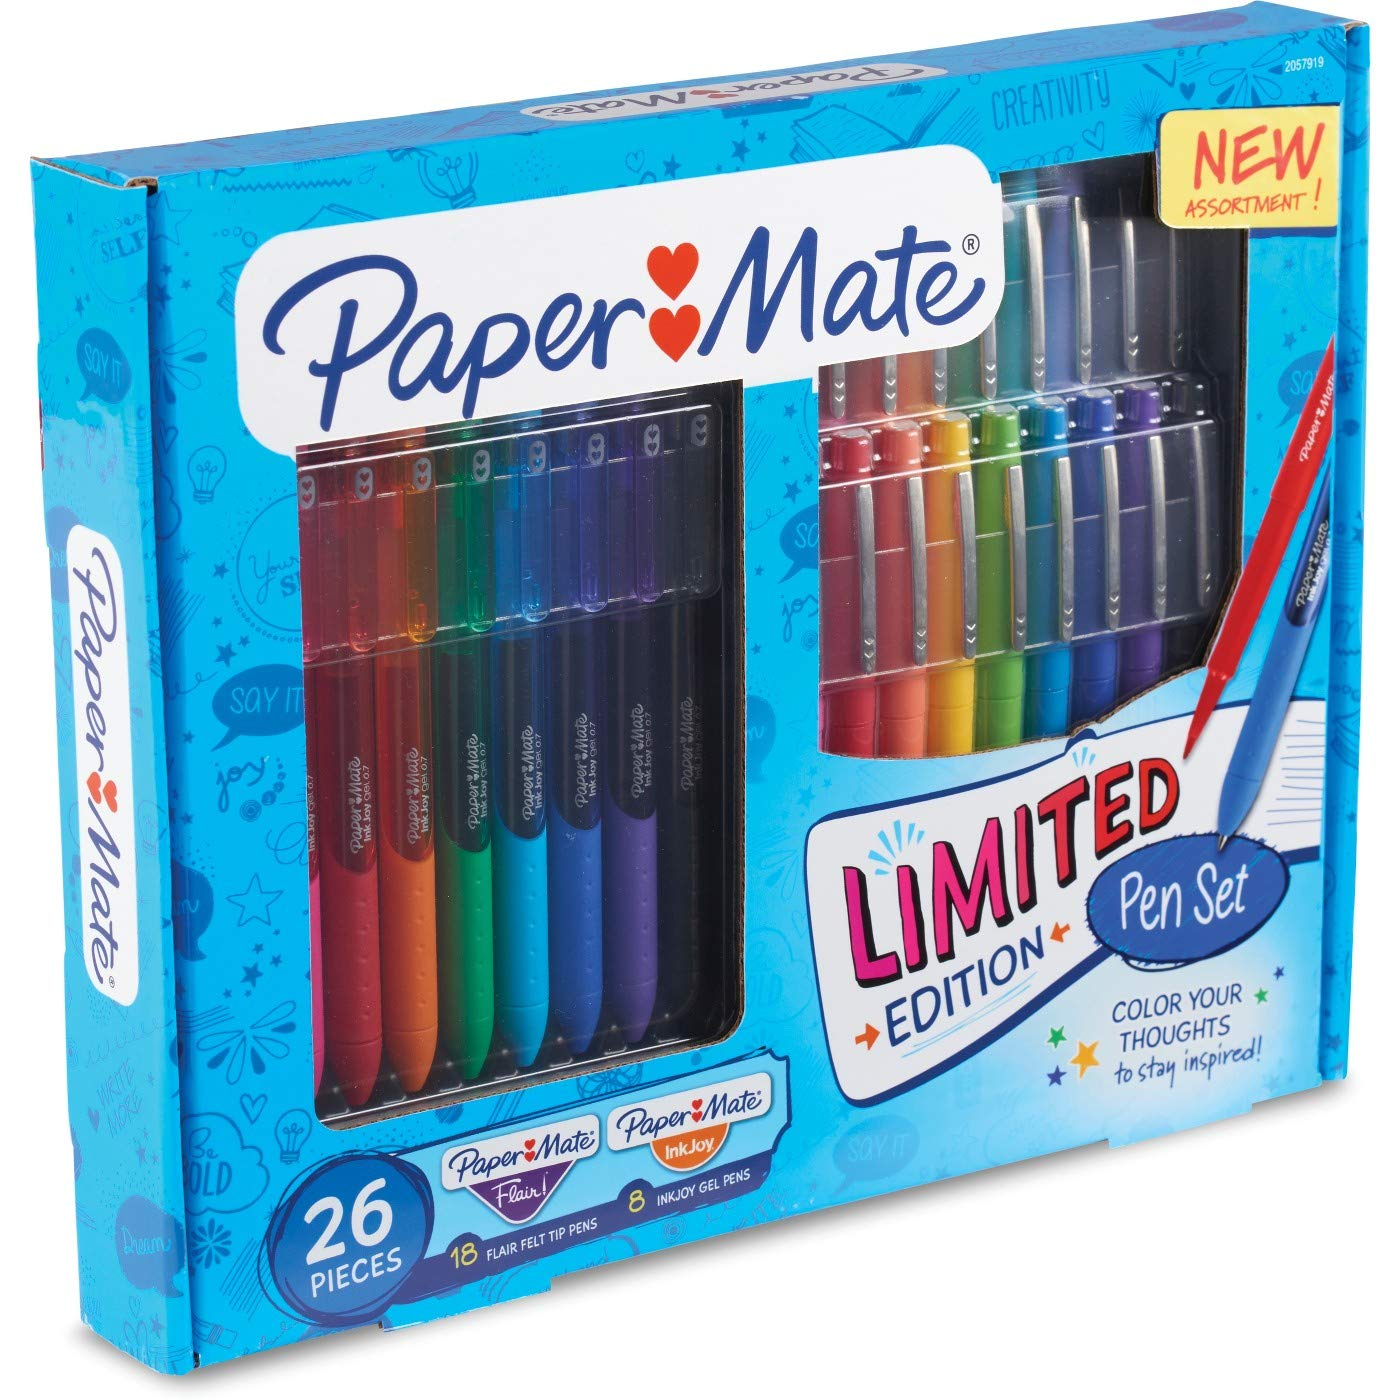 Paper Mate Rollerball Gel Pens 26ct - Multicolor by Paper Mate (Image #2)